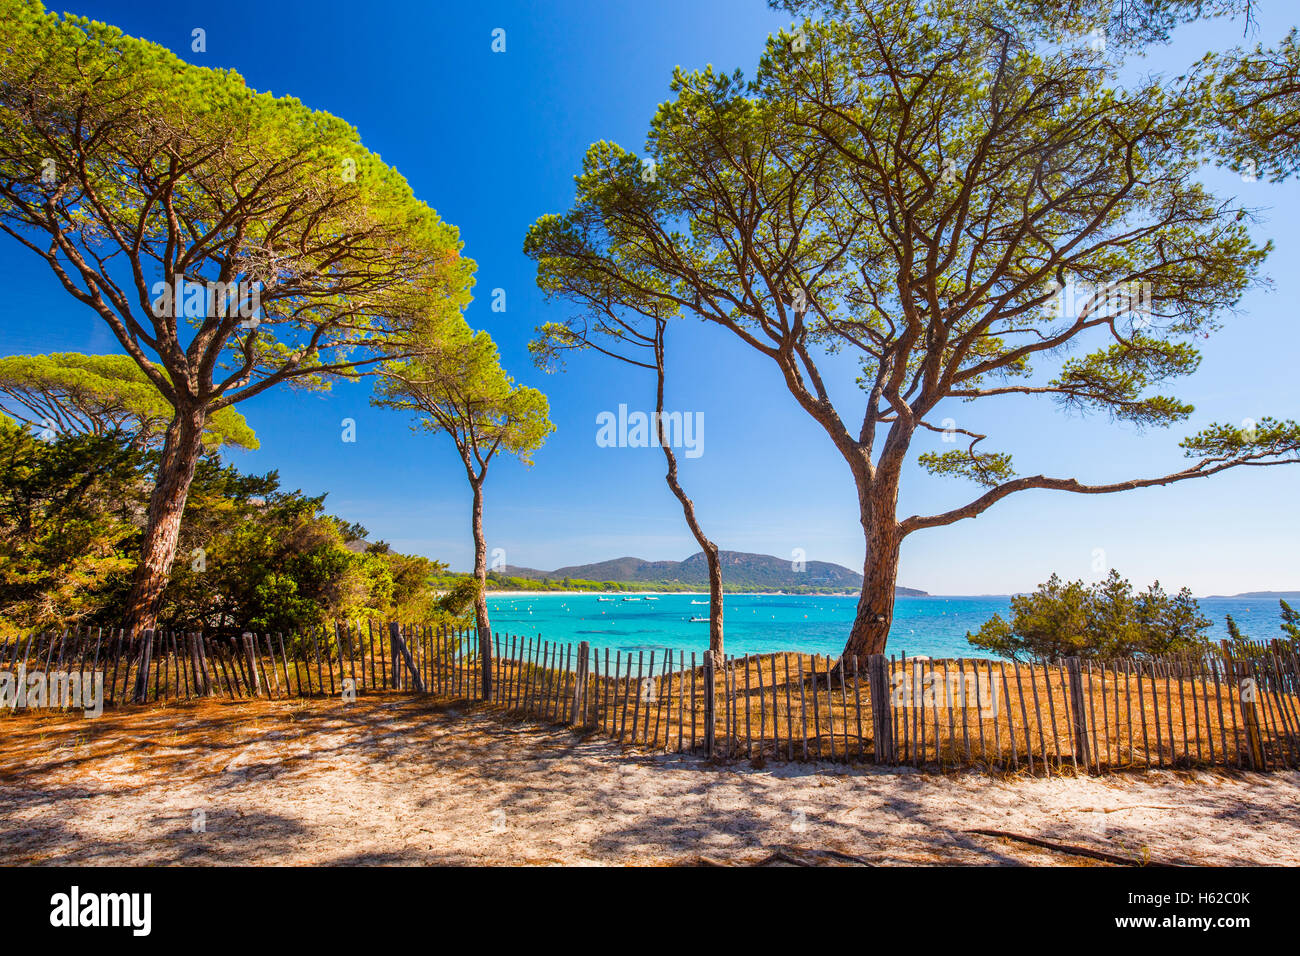 Pine tree on Palombaggia sandy beach on the south part of Corsica, France, Europe. - Stock Image